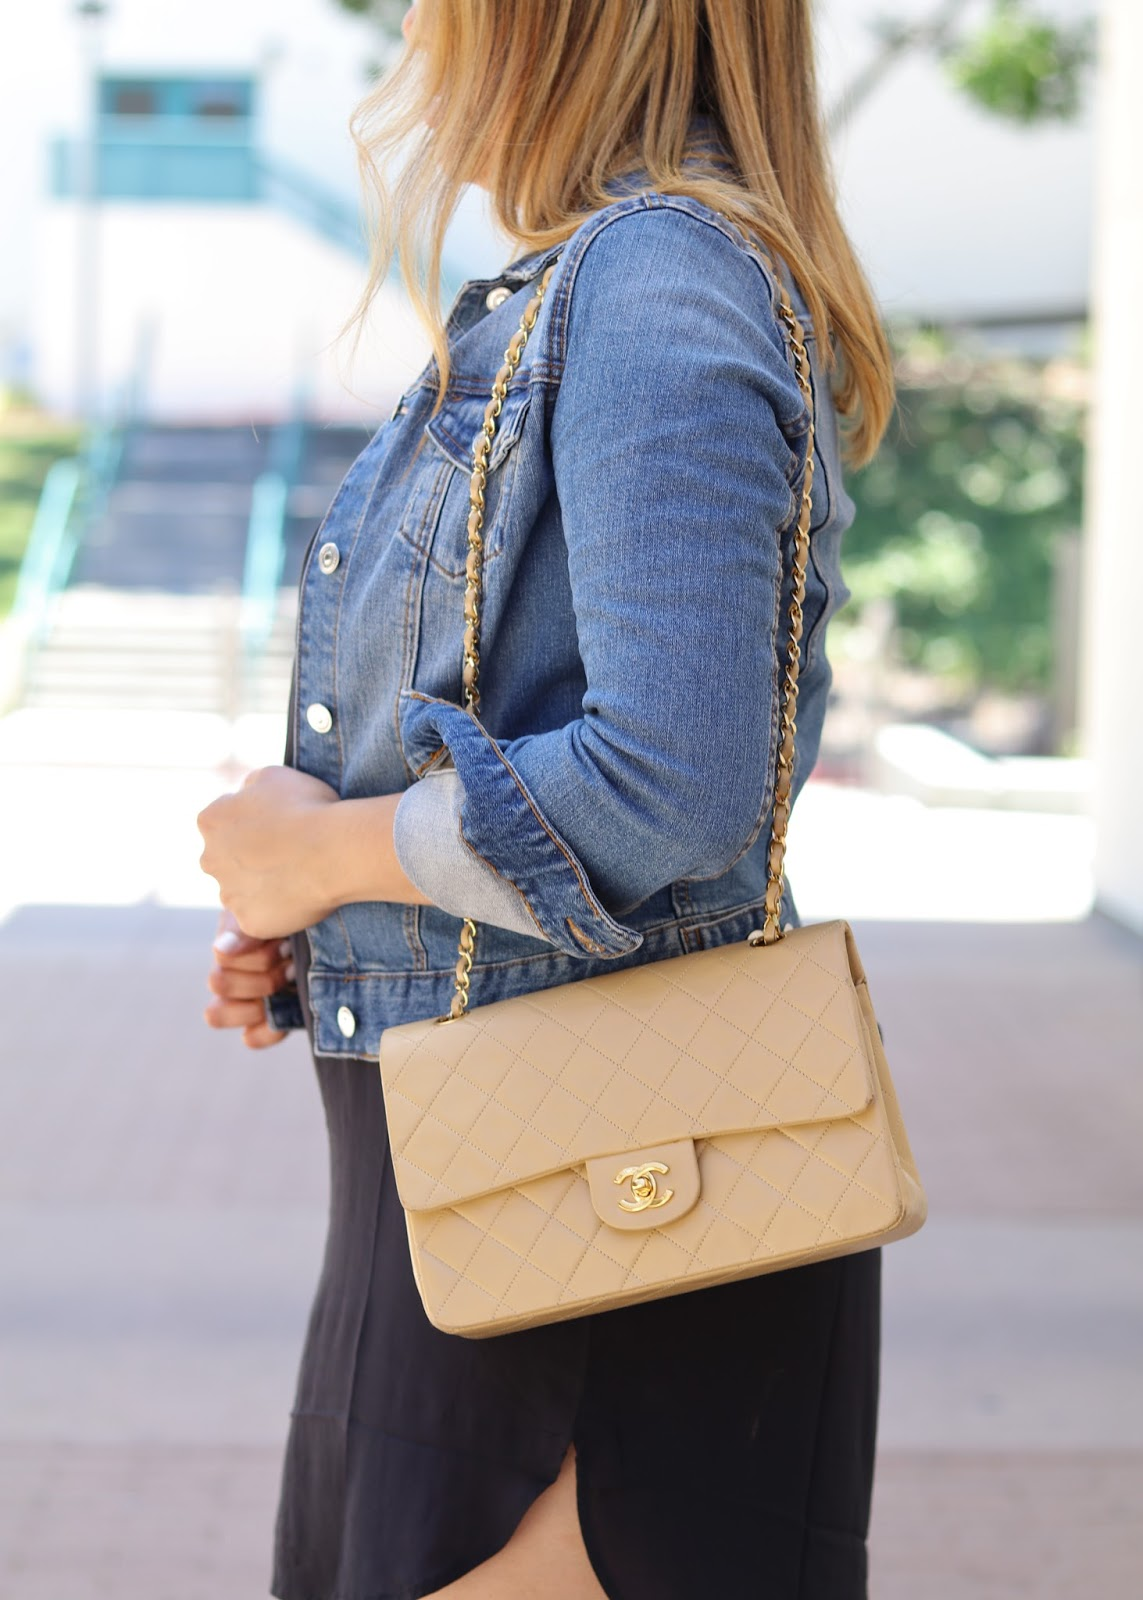 denim jacket outfit, how to wear a nude chanel bag, nude chanel flap bag, socal fashion blogger, san diego style blogger